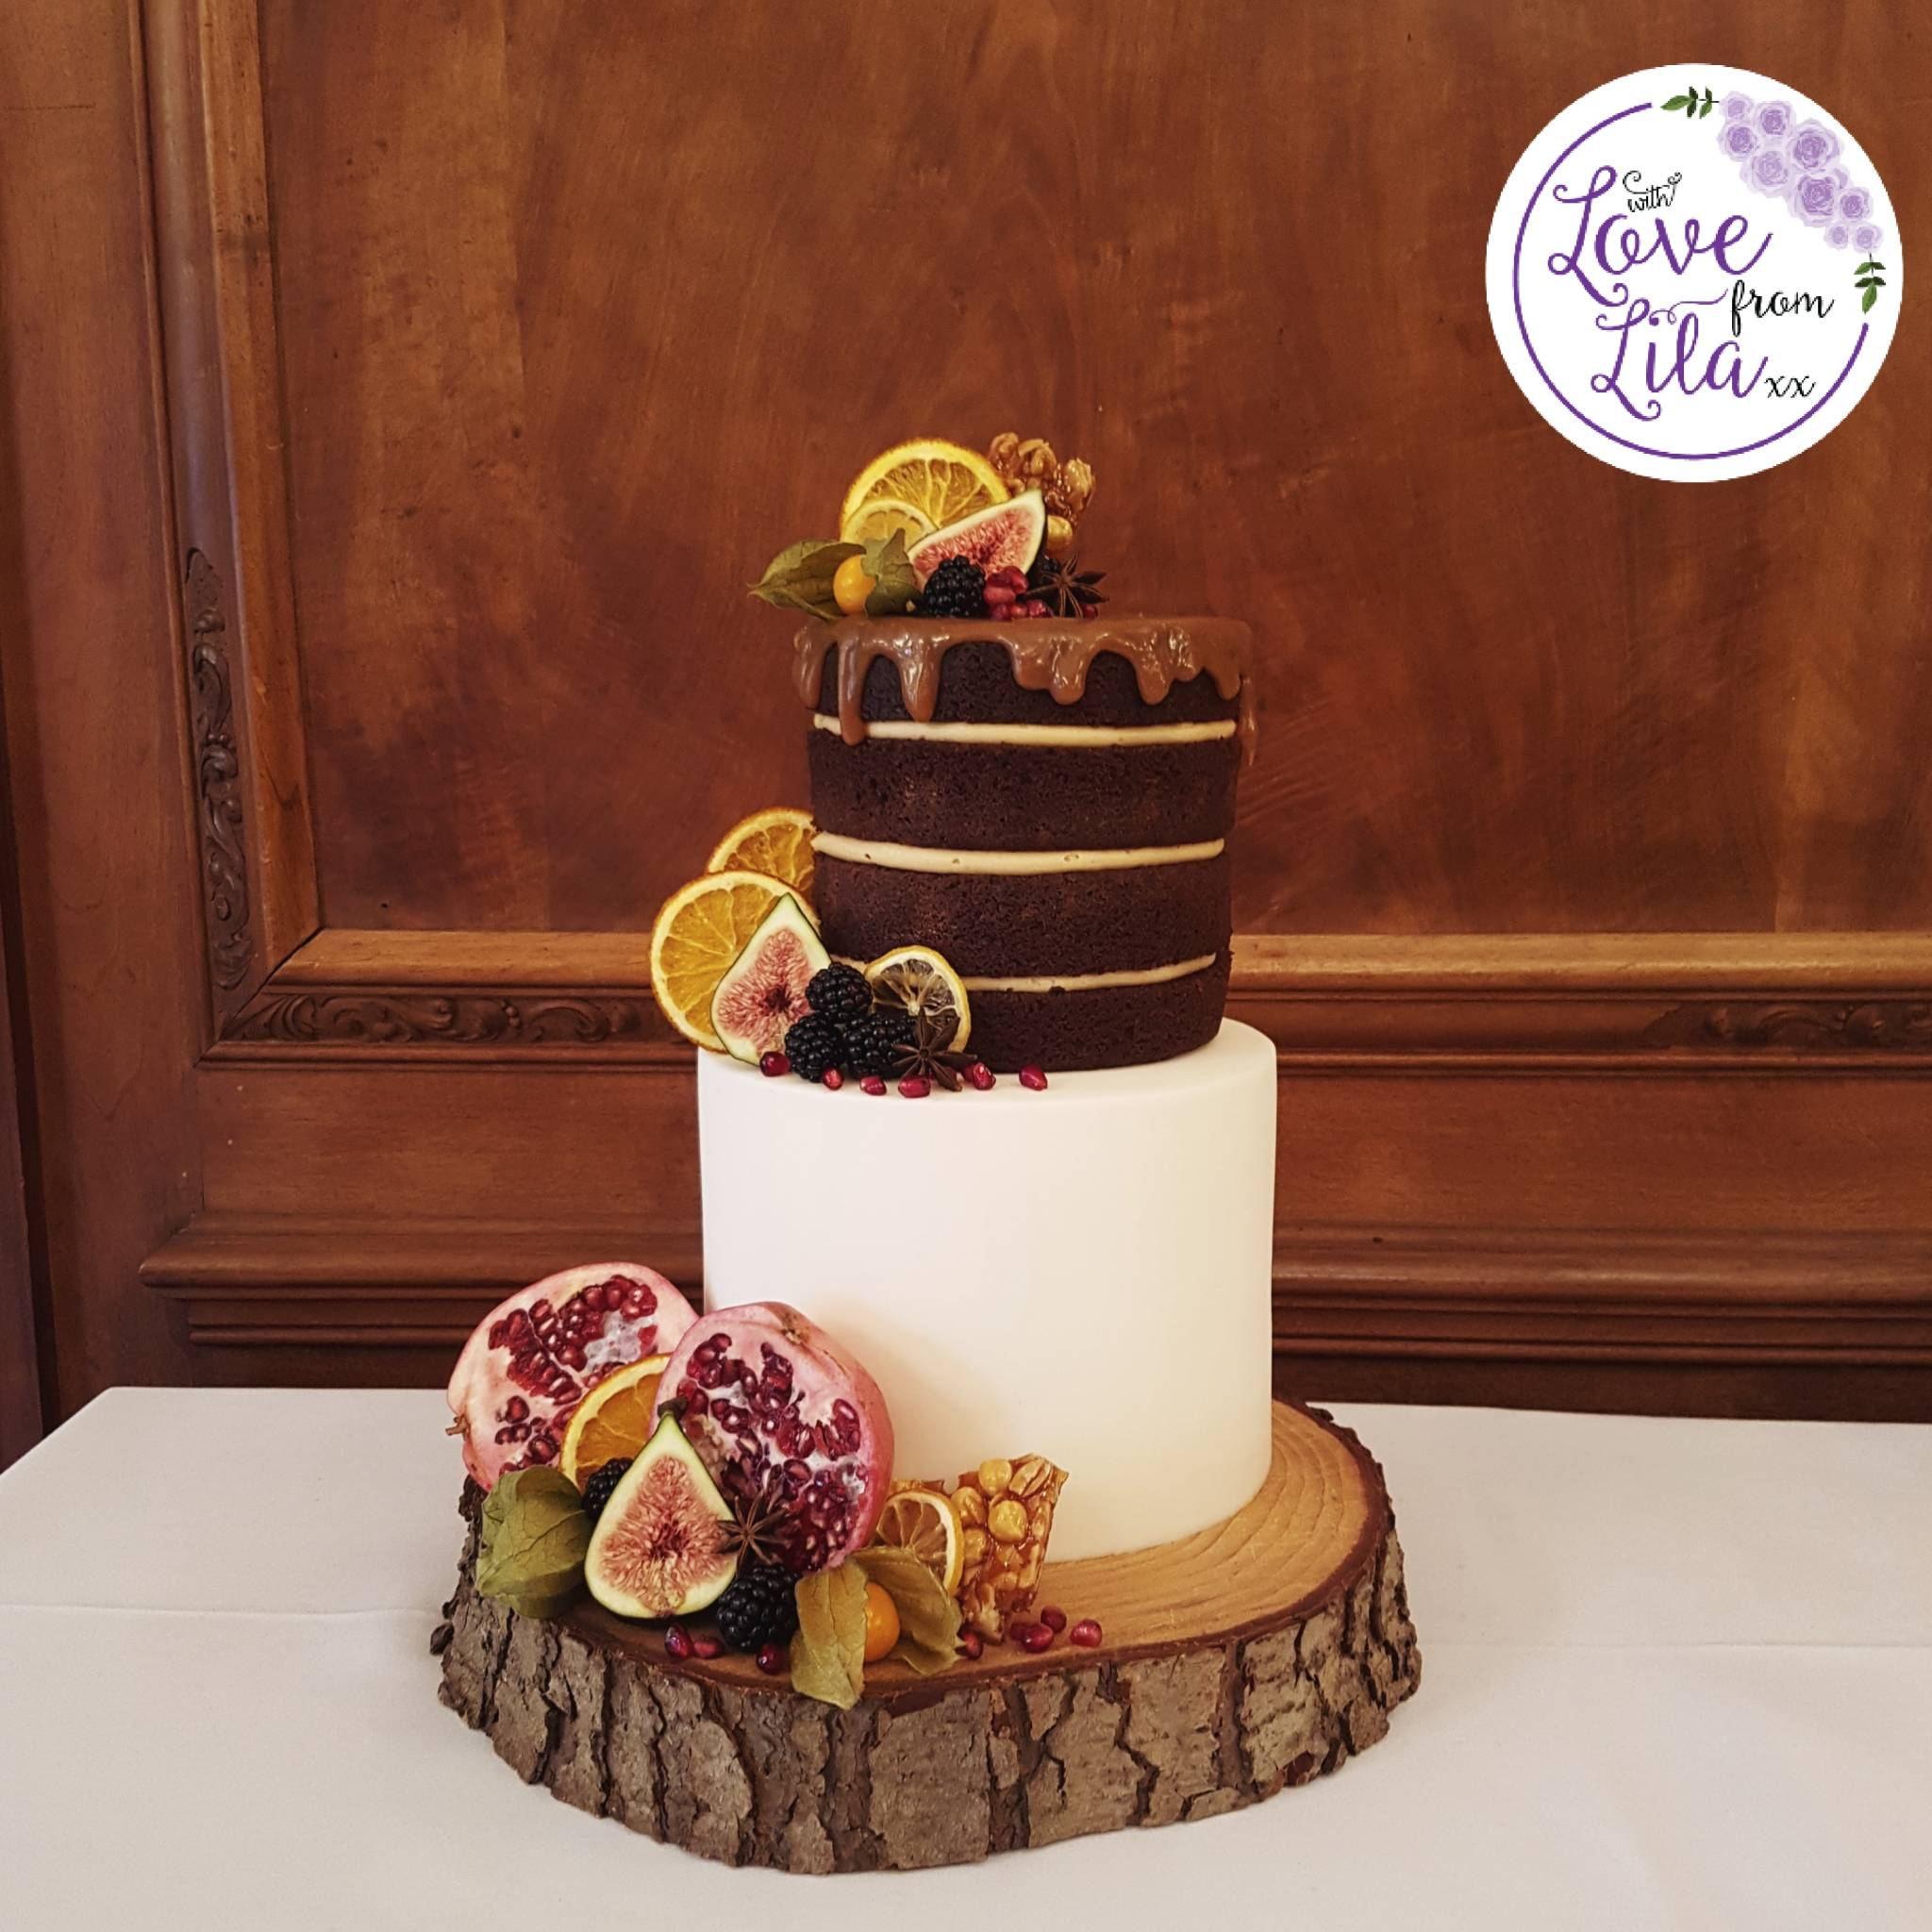 Love from lila xx - Naked Winter Wedding Cake